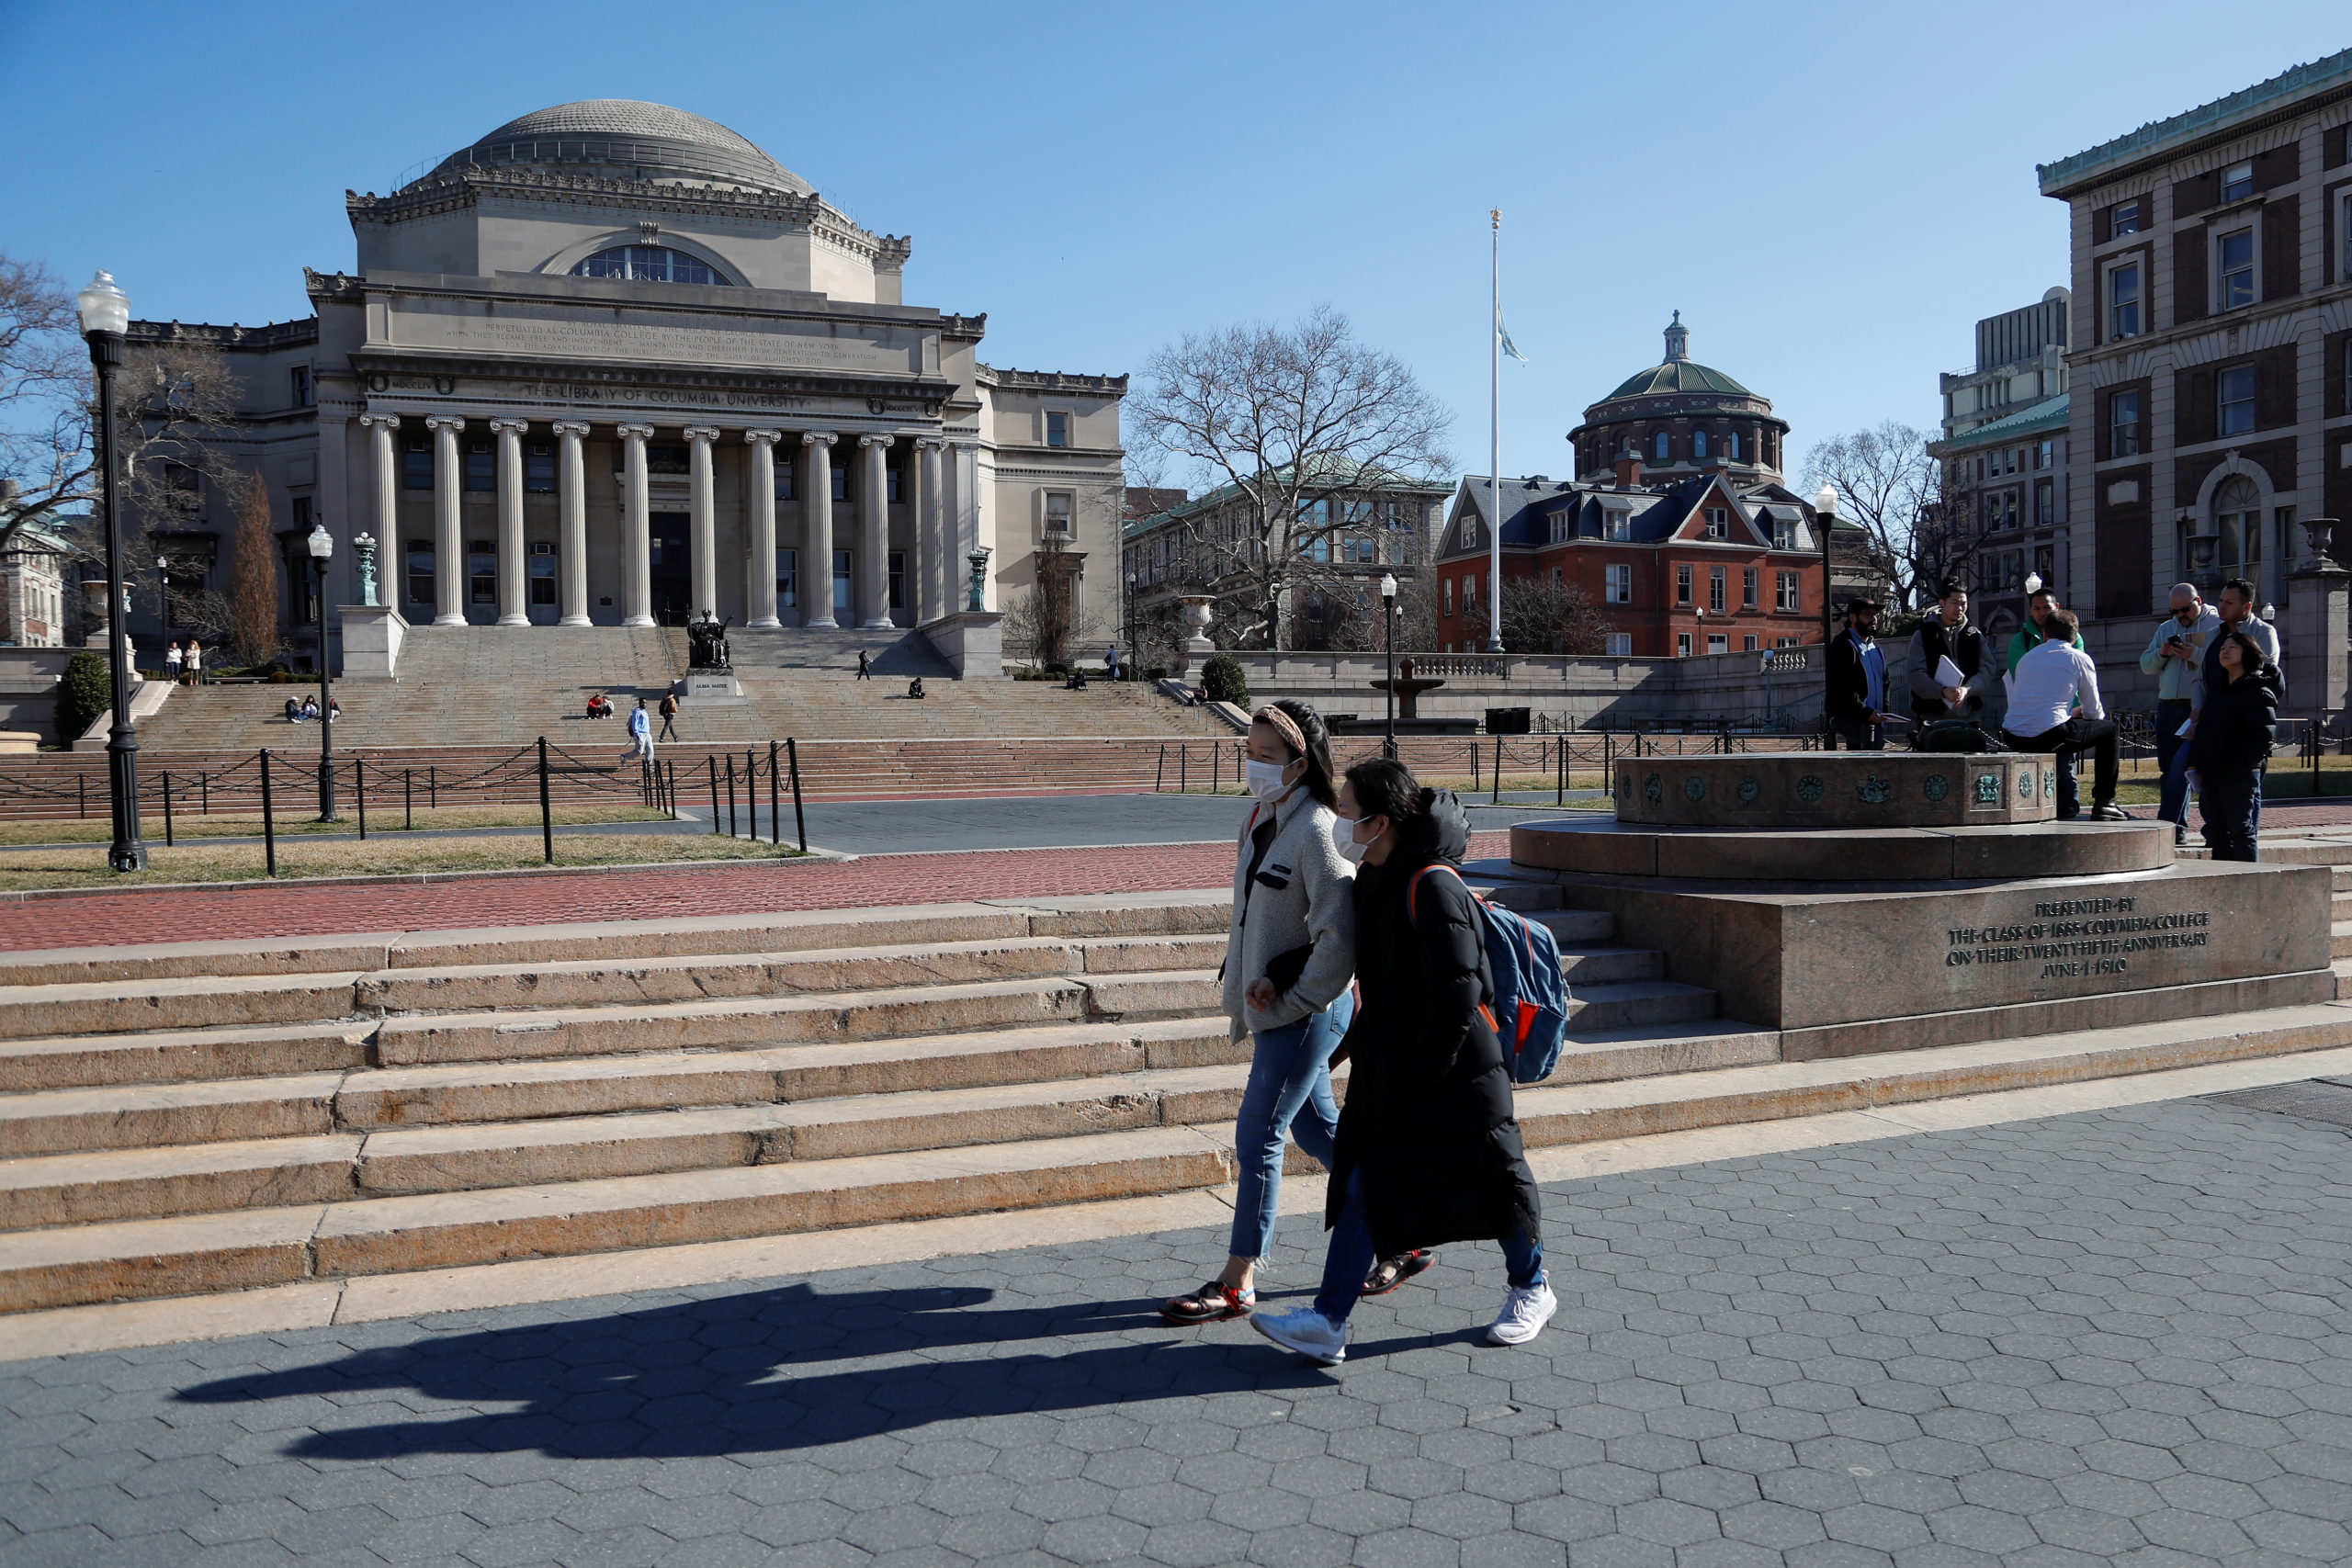 People with face masks walk at Columbia University in New York City, where classes on Monday and Tuesday were suspended because someone on the campus was under quarantine from exposure to the coronavirus, in New York, U.S., March 9, 2020. REUTERS/Shannon Stapleton